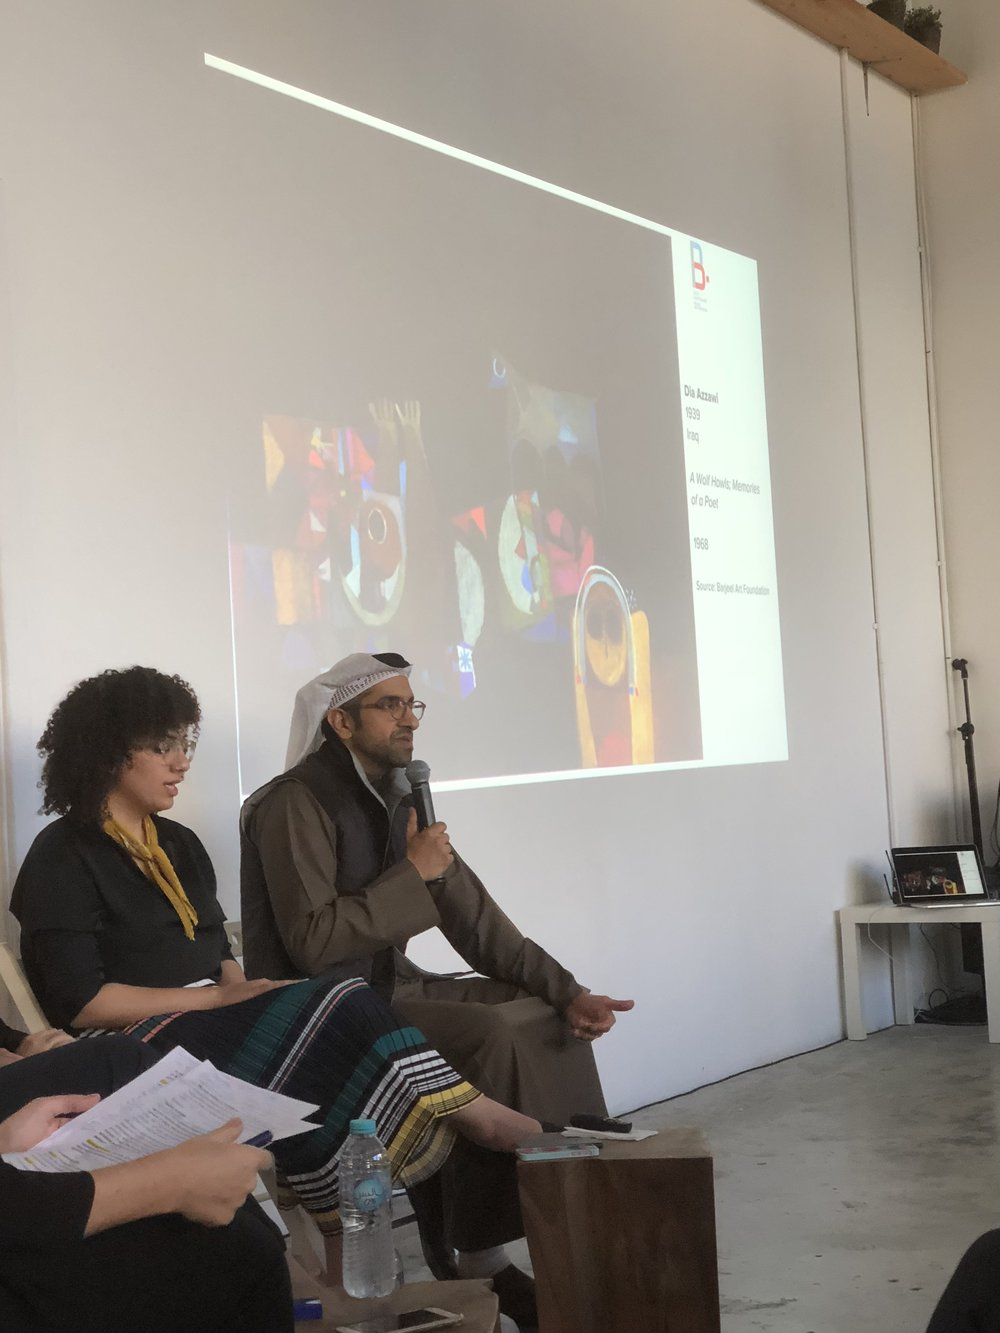 Sultan Sooud Al Qassemi reveals his latest acquisition to audiences at a panel discussion in Alserkal Avenue. The image is Dia Azzawi's A Wolf Howls: Memories of a Poet (1968)